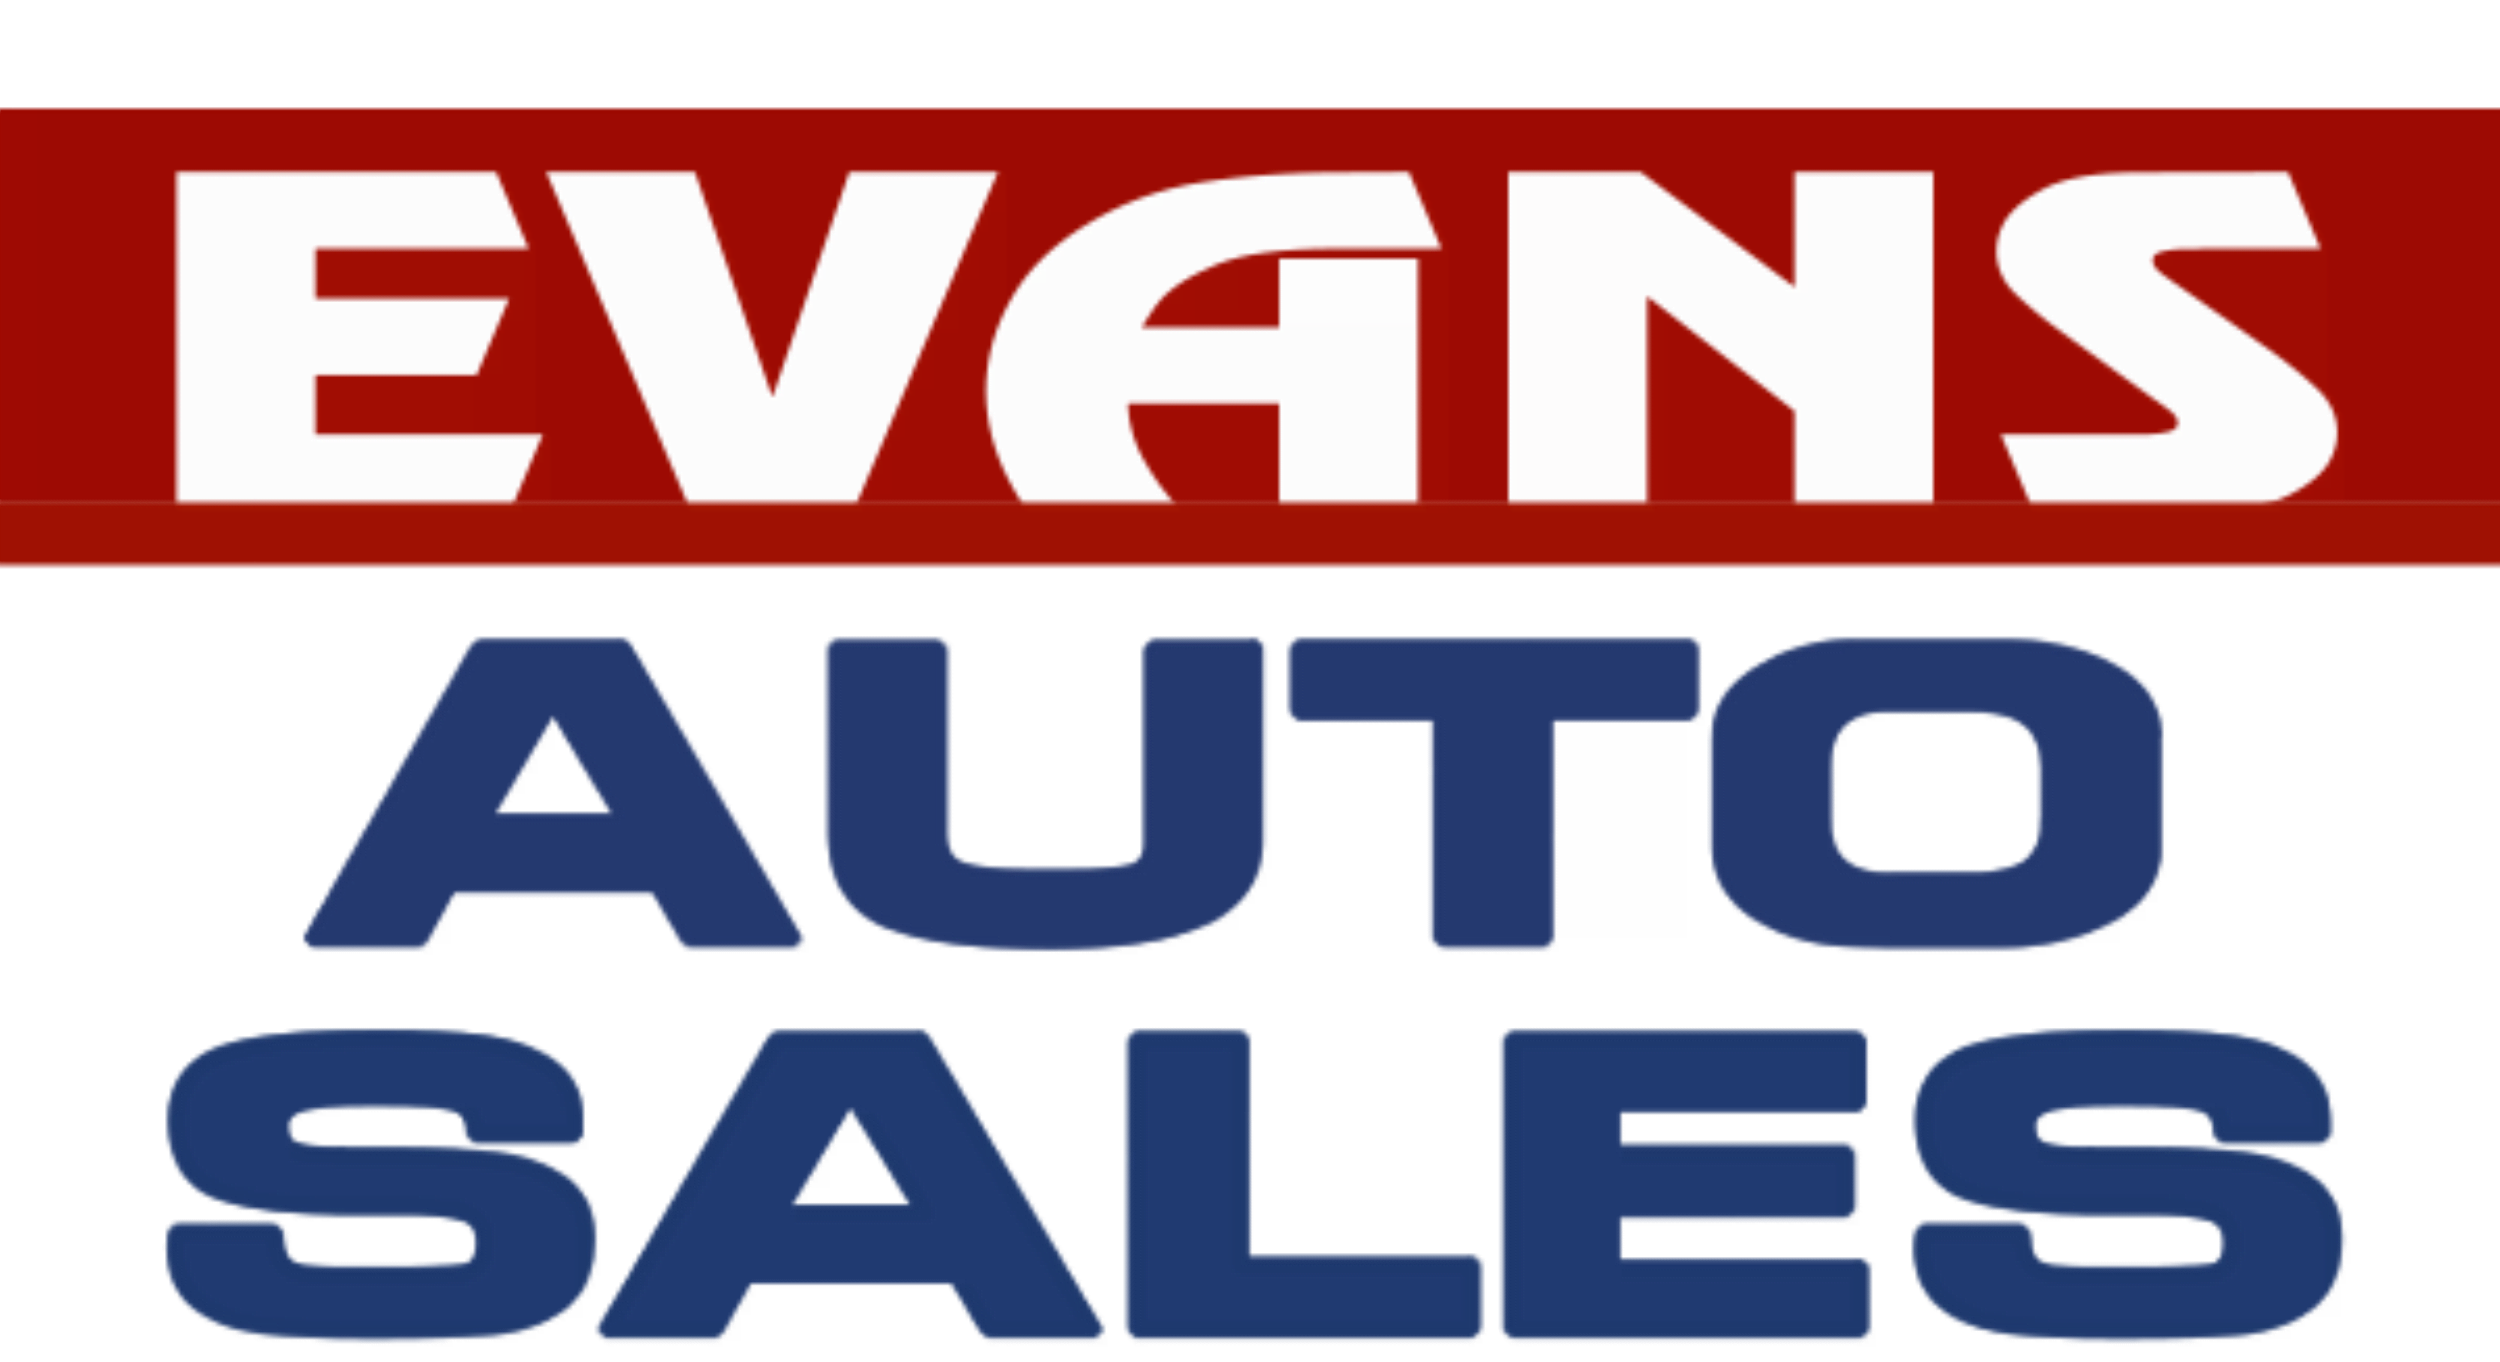 Evans Auto Sales >> Hours By Evans Auto Sales Of Daytona Beach Fl Providing Clean And